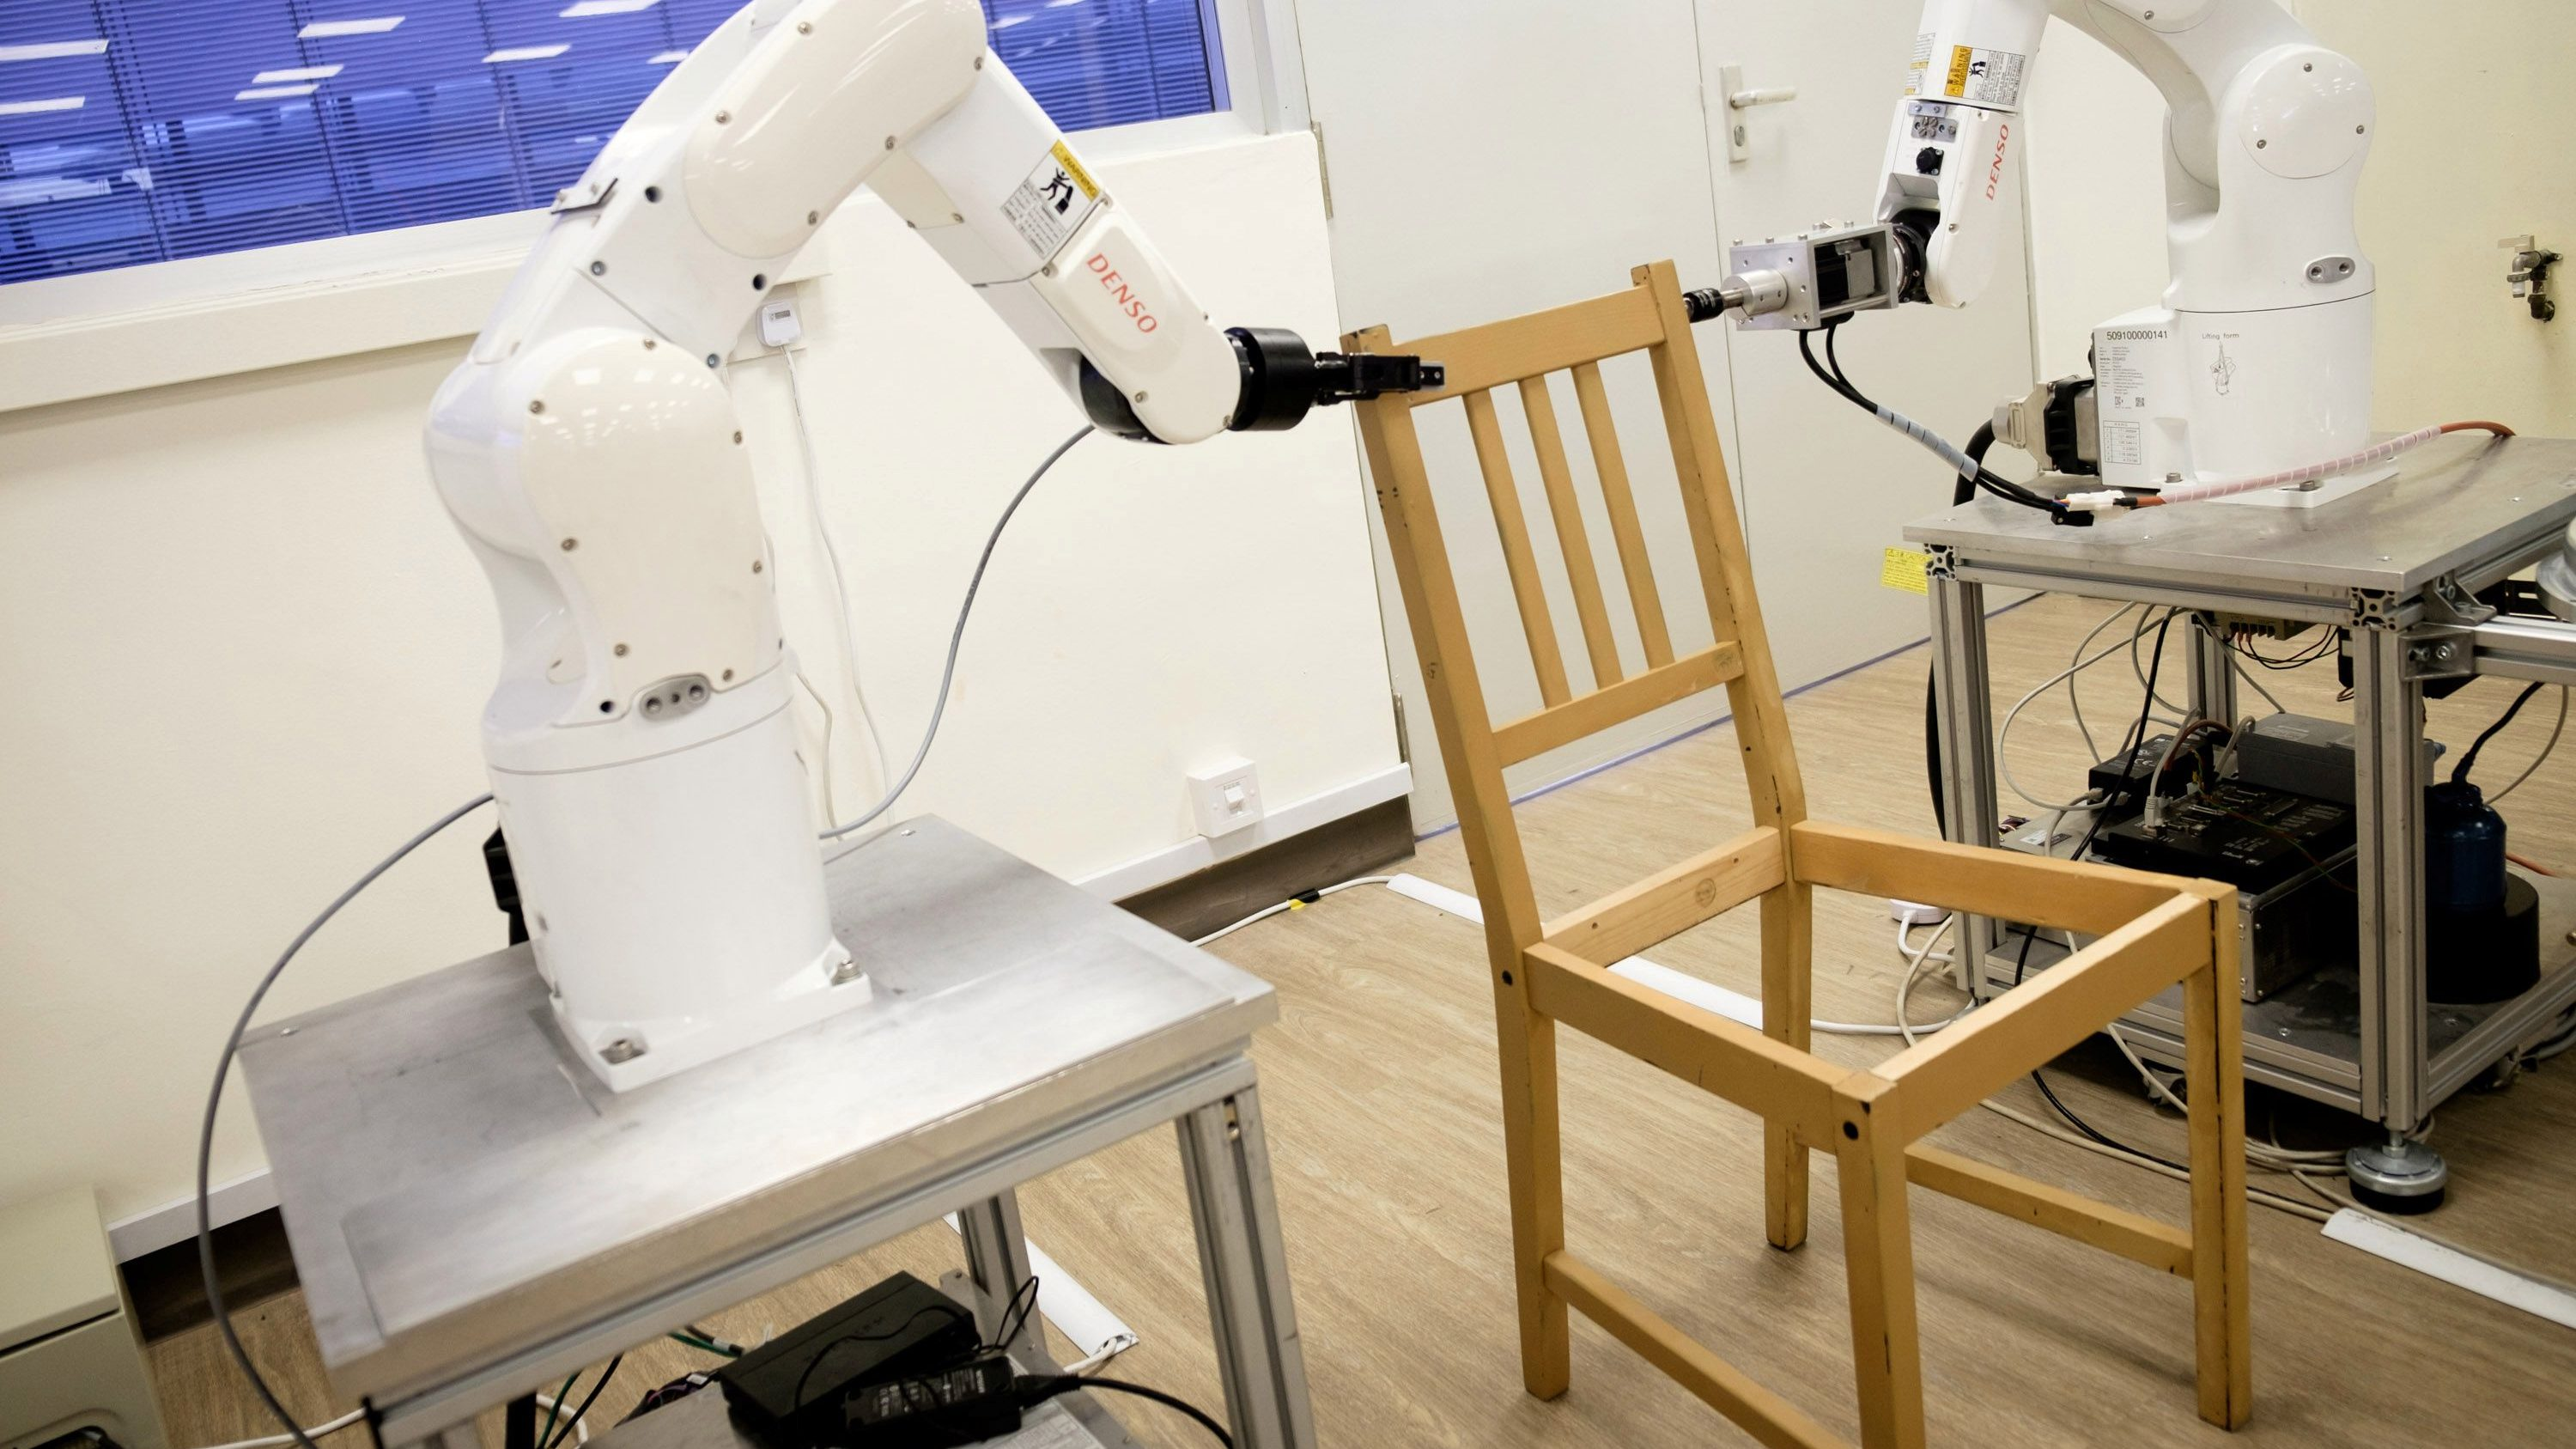 Furniture-building robot assembles IKEA chair in less than 9 minutes